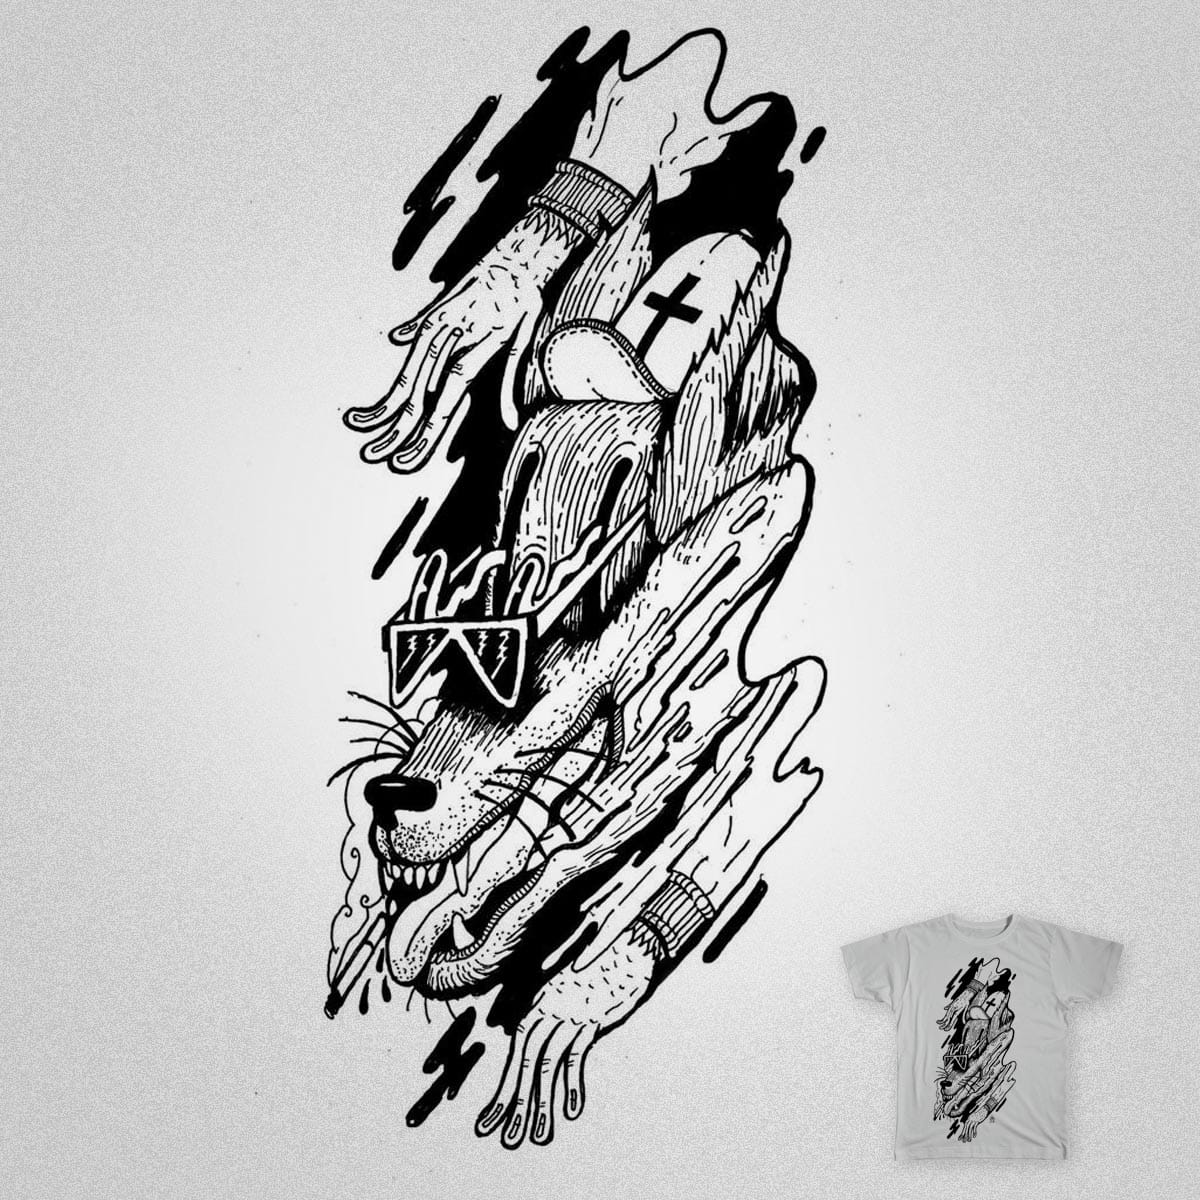 i got a wolf inside by adriansantanacruz on Threadless